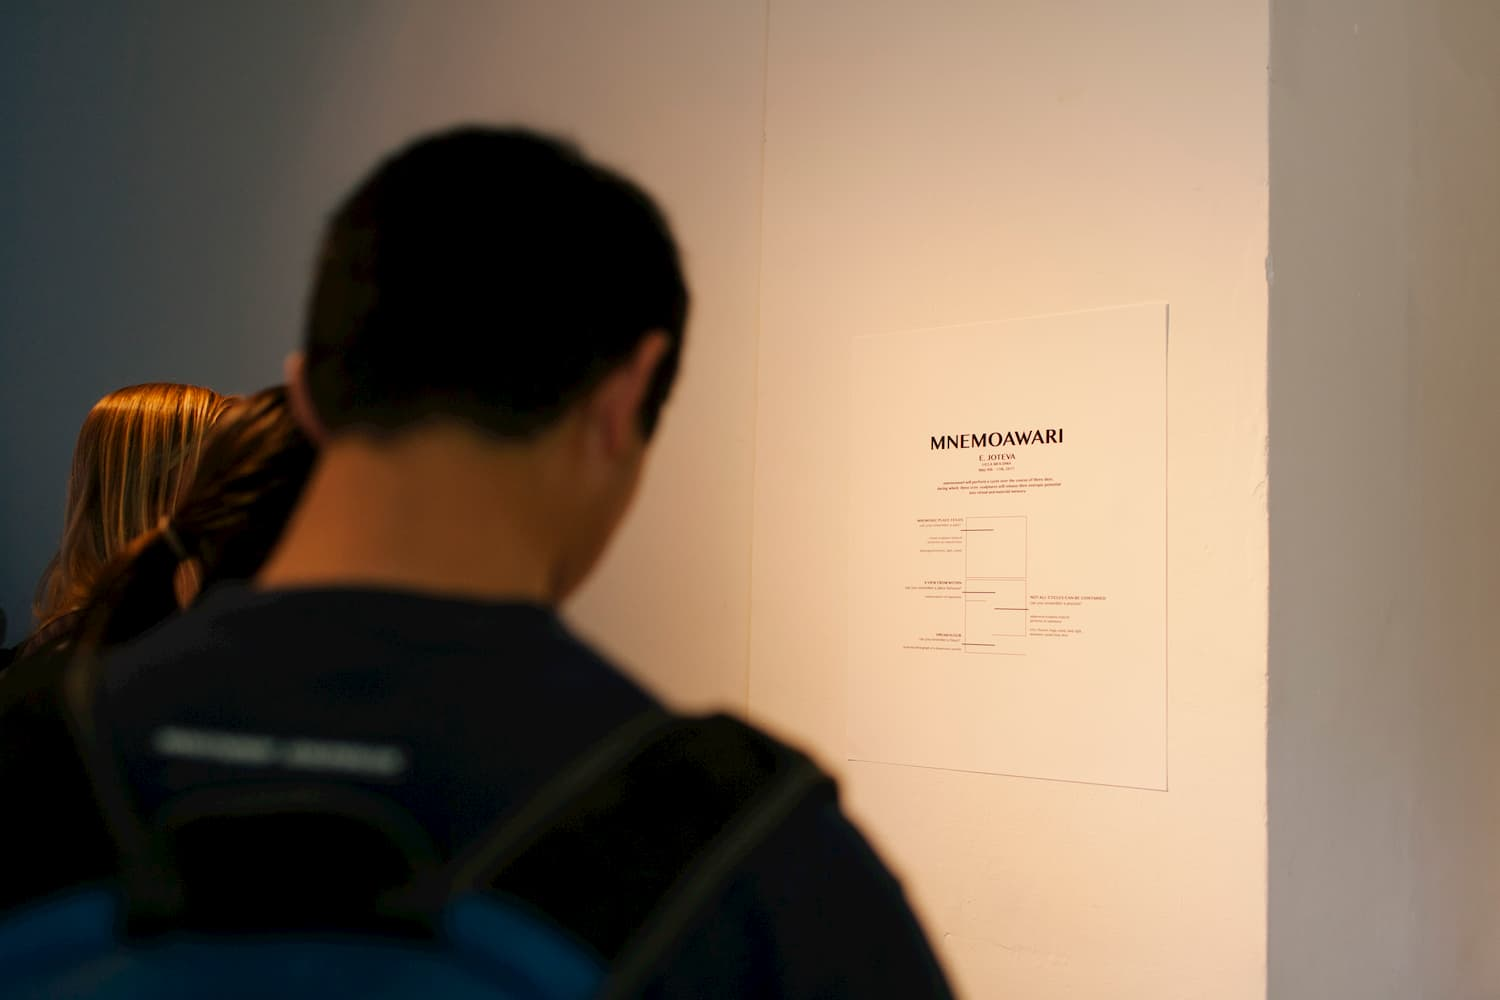 Person looking at the press release for Joteva's solo show MNEMOAWARI.